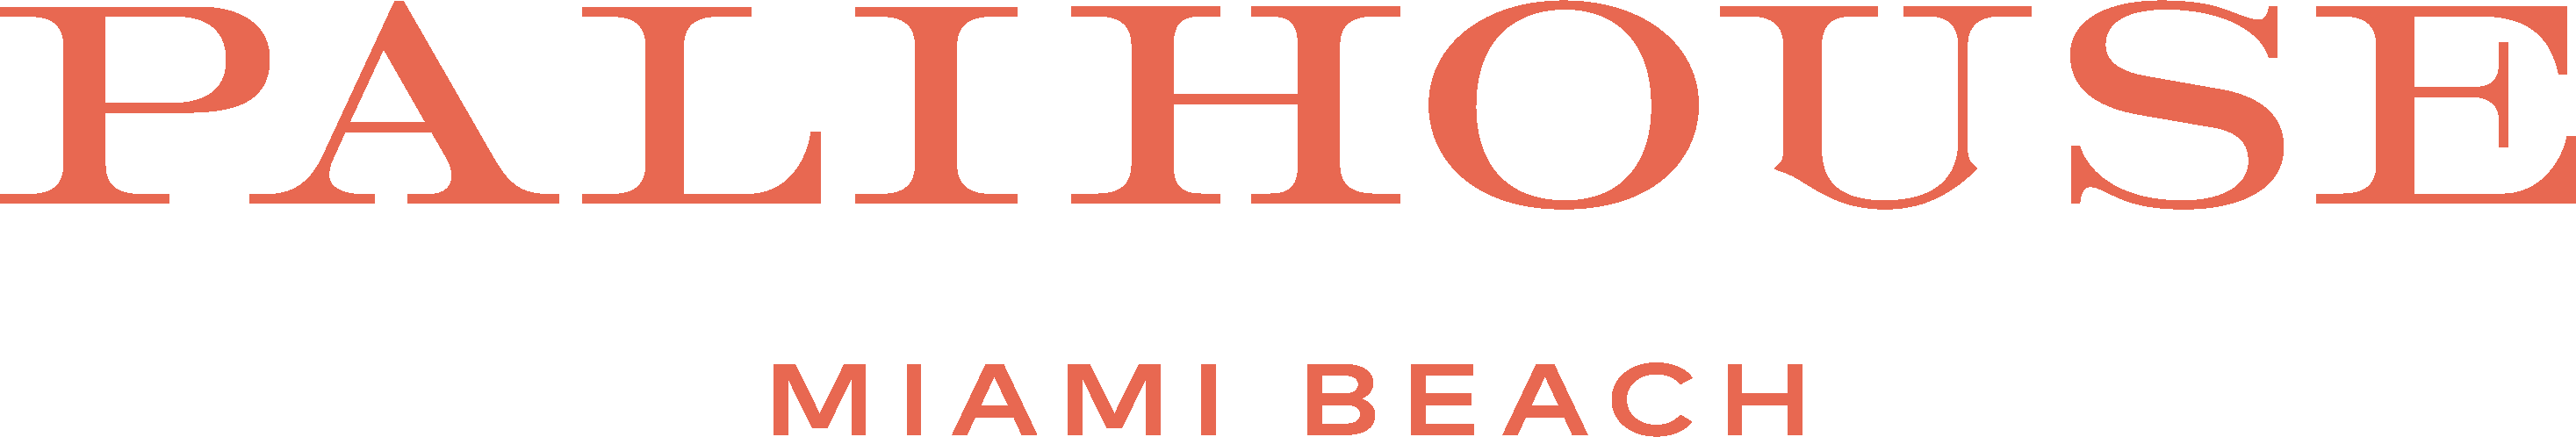 Miami beach logo text